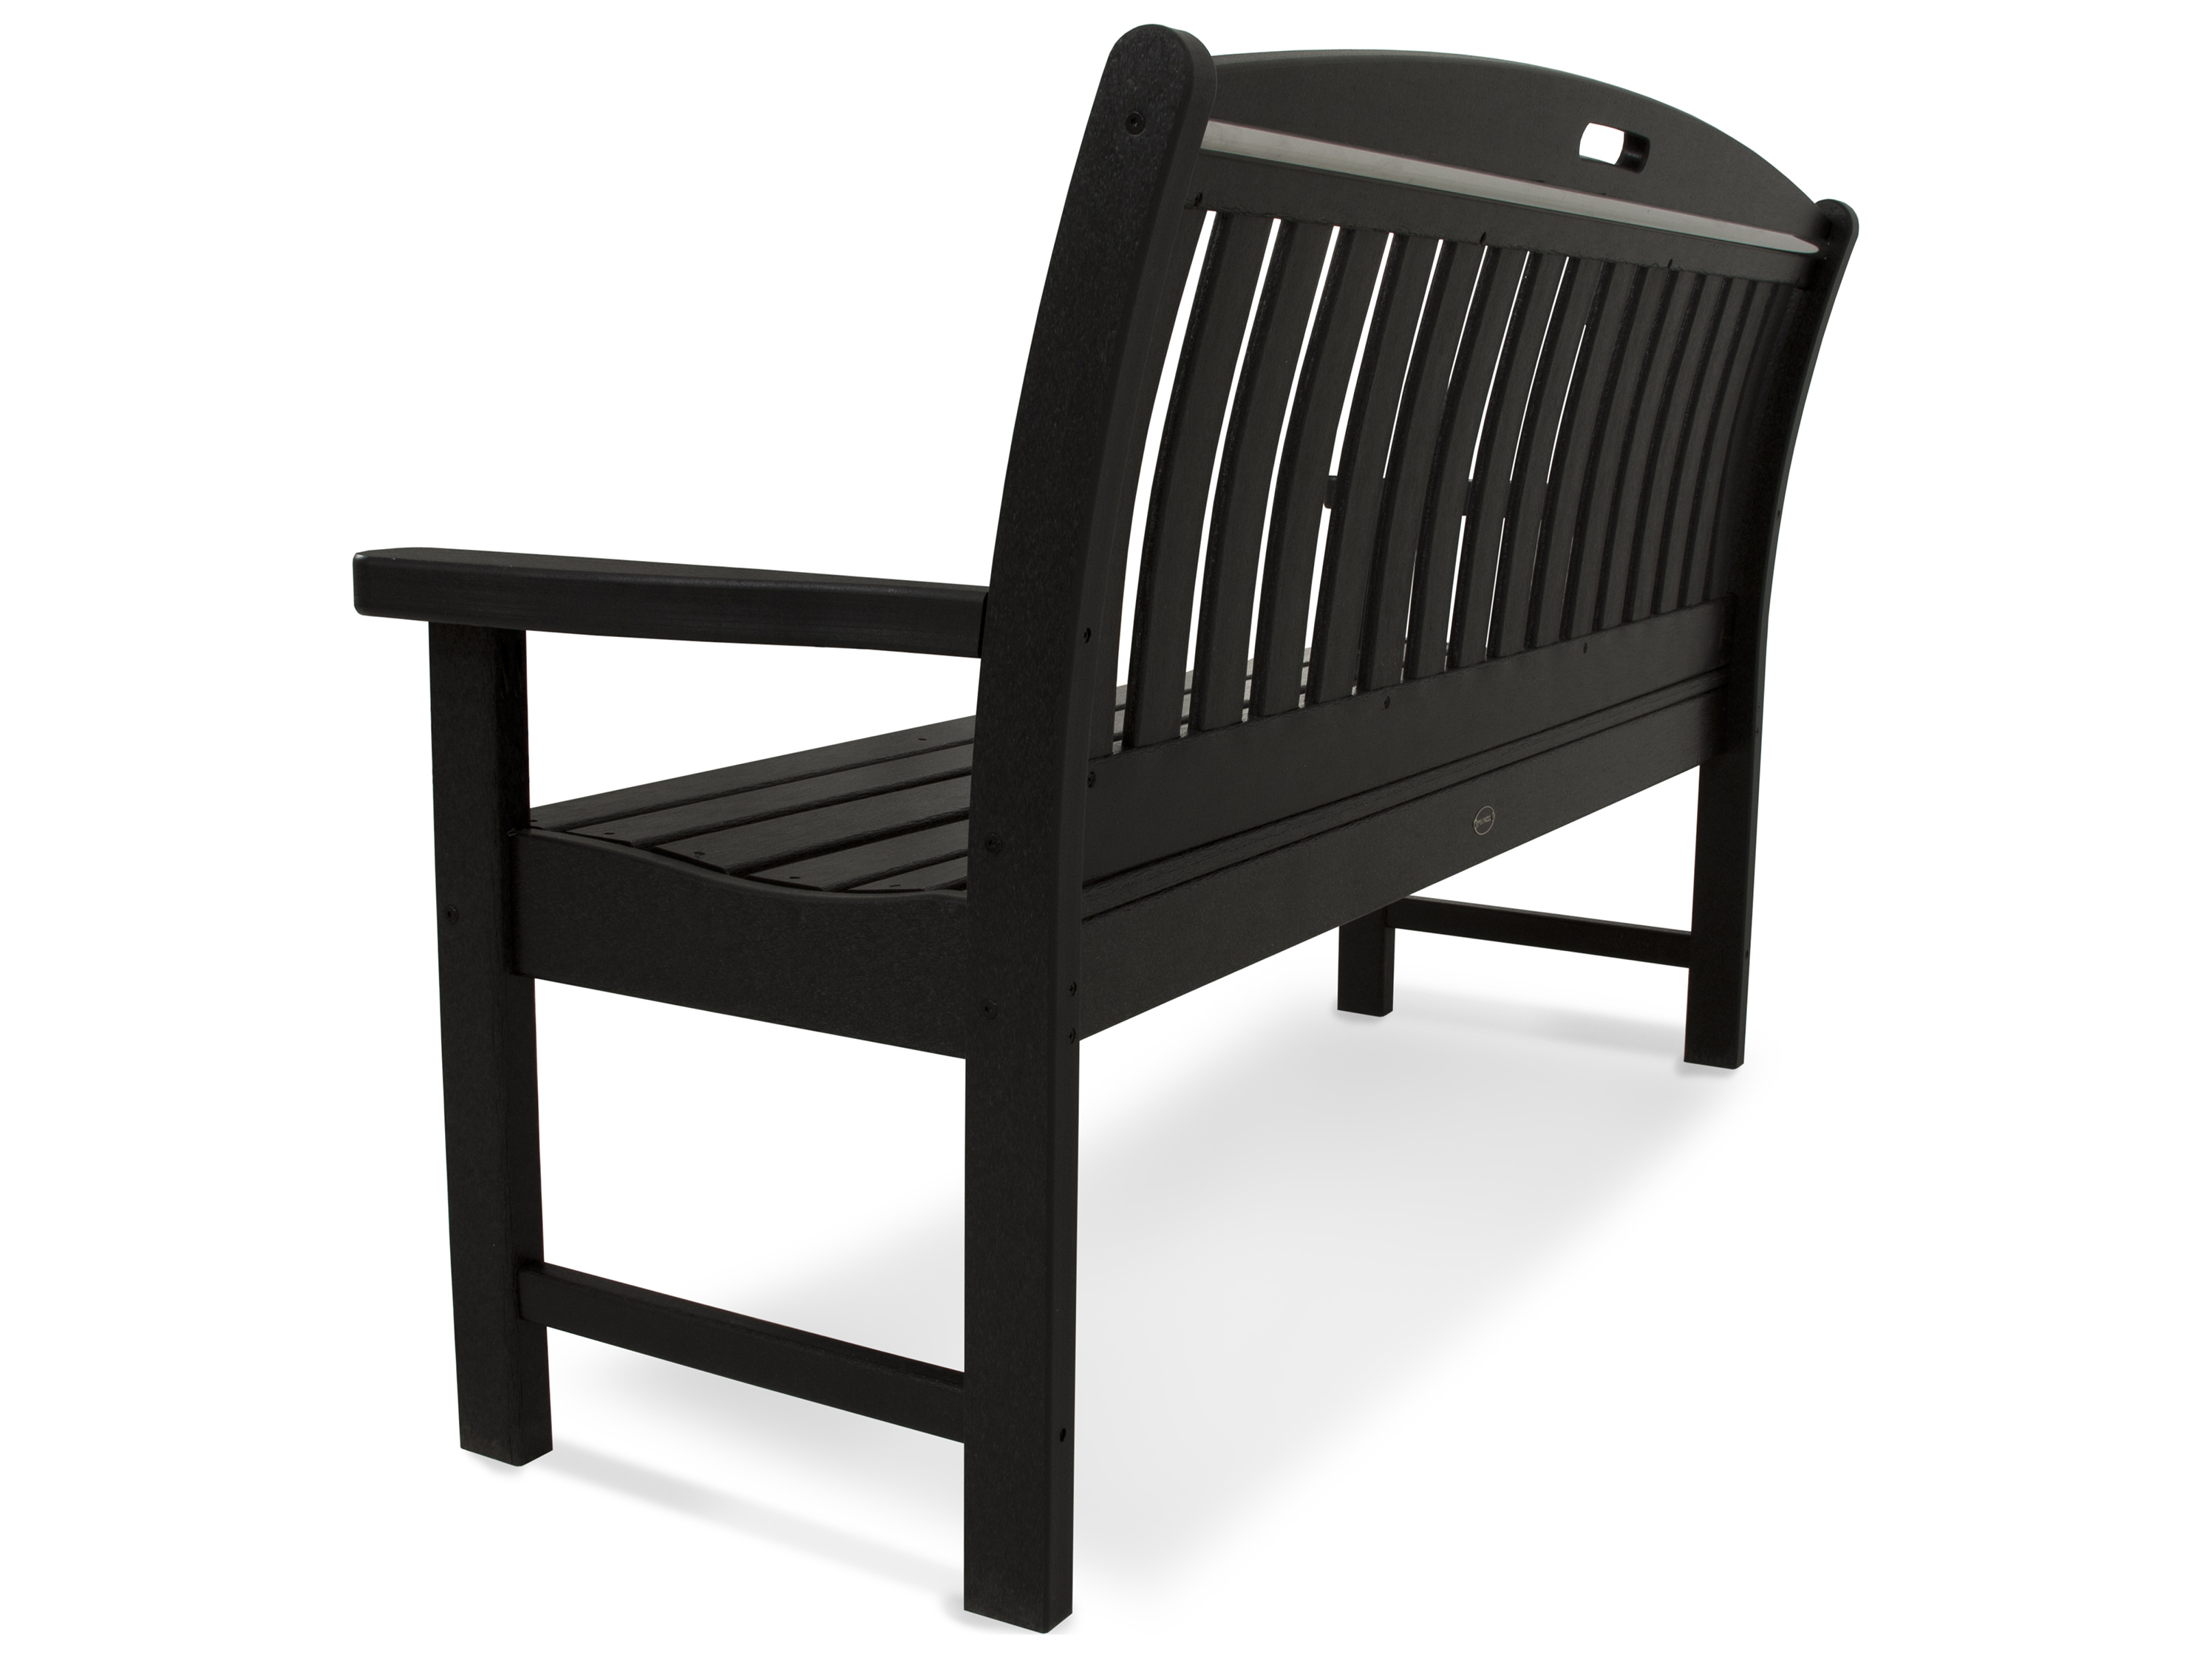 Polywood nautical recycled plastic 60 bench nb60 Polywood bench